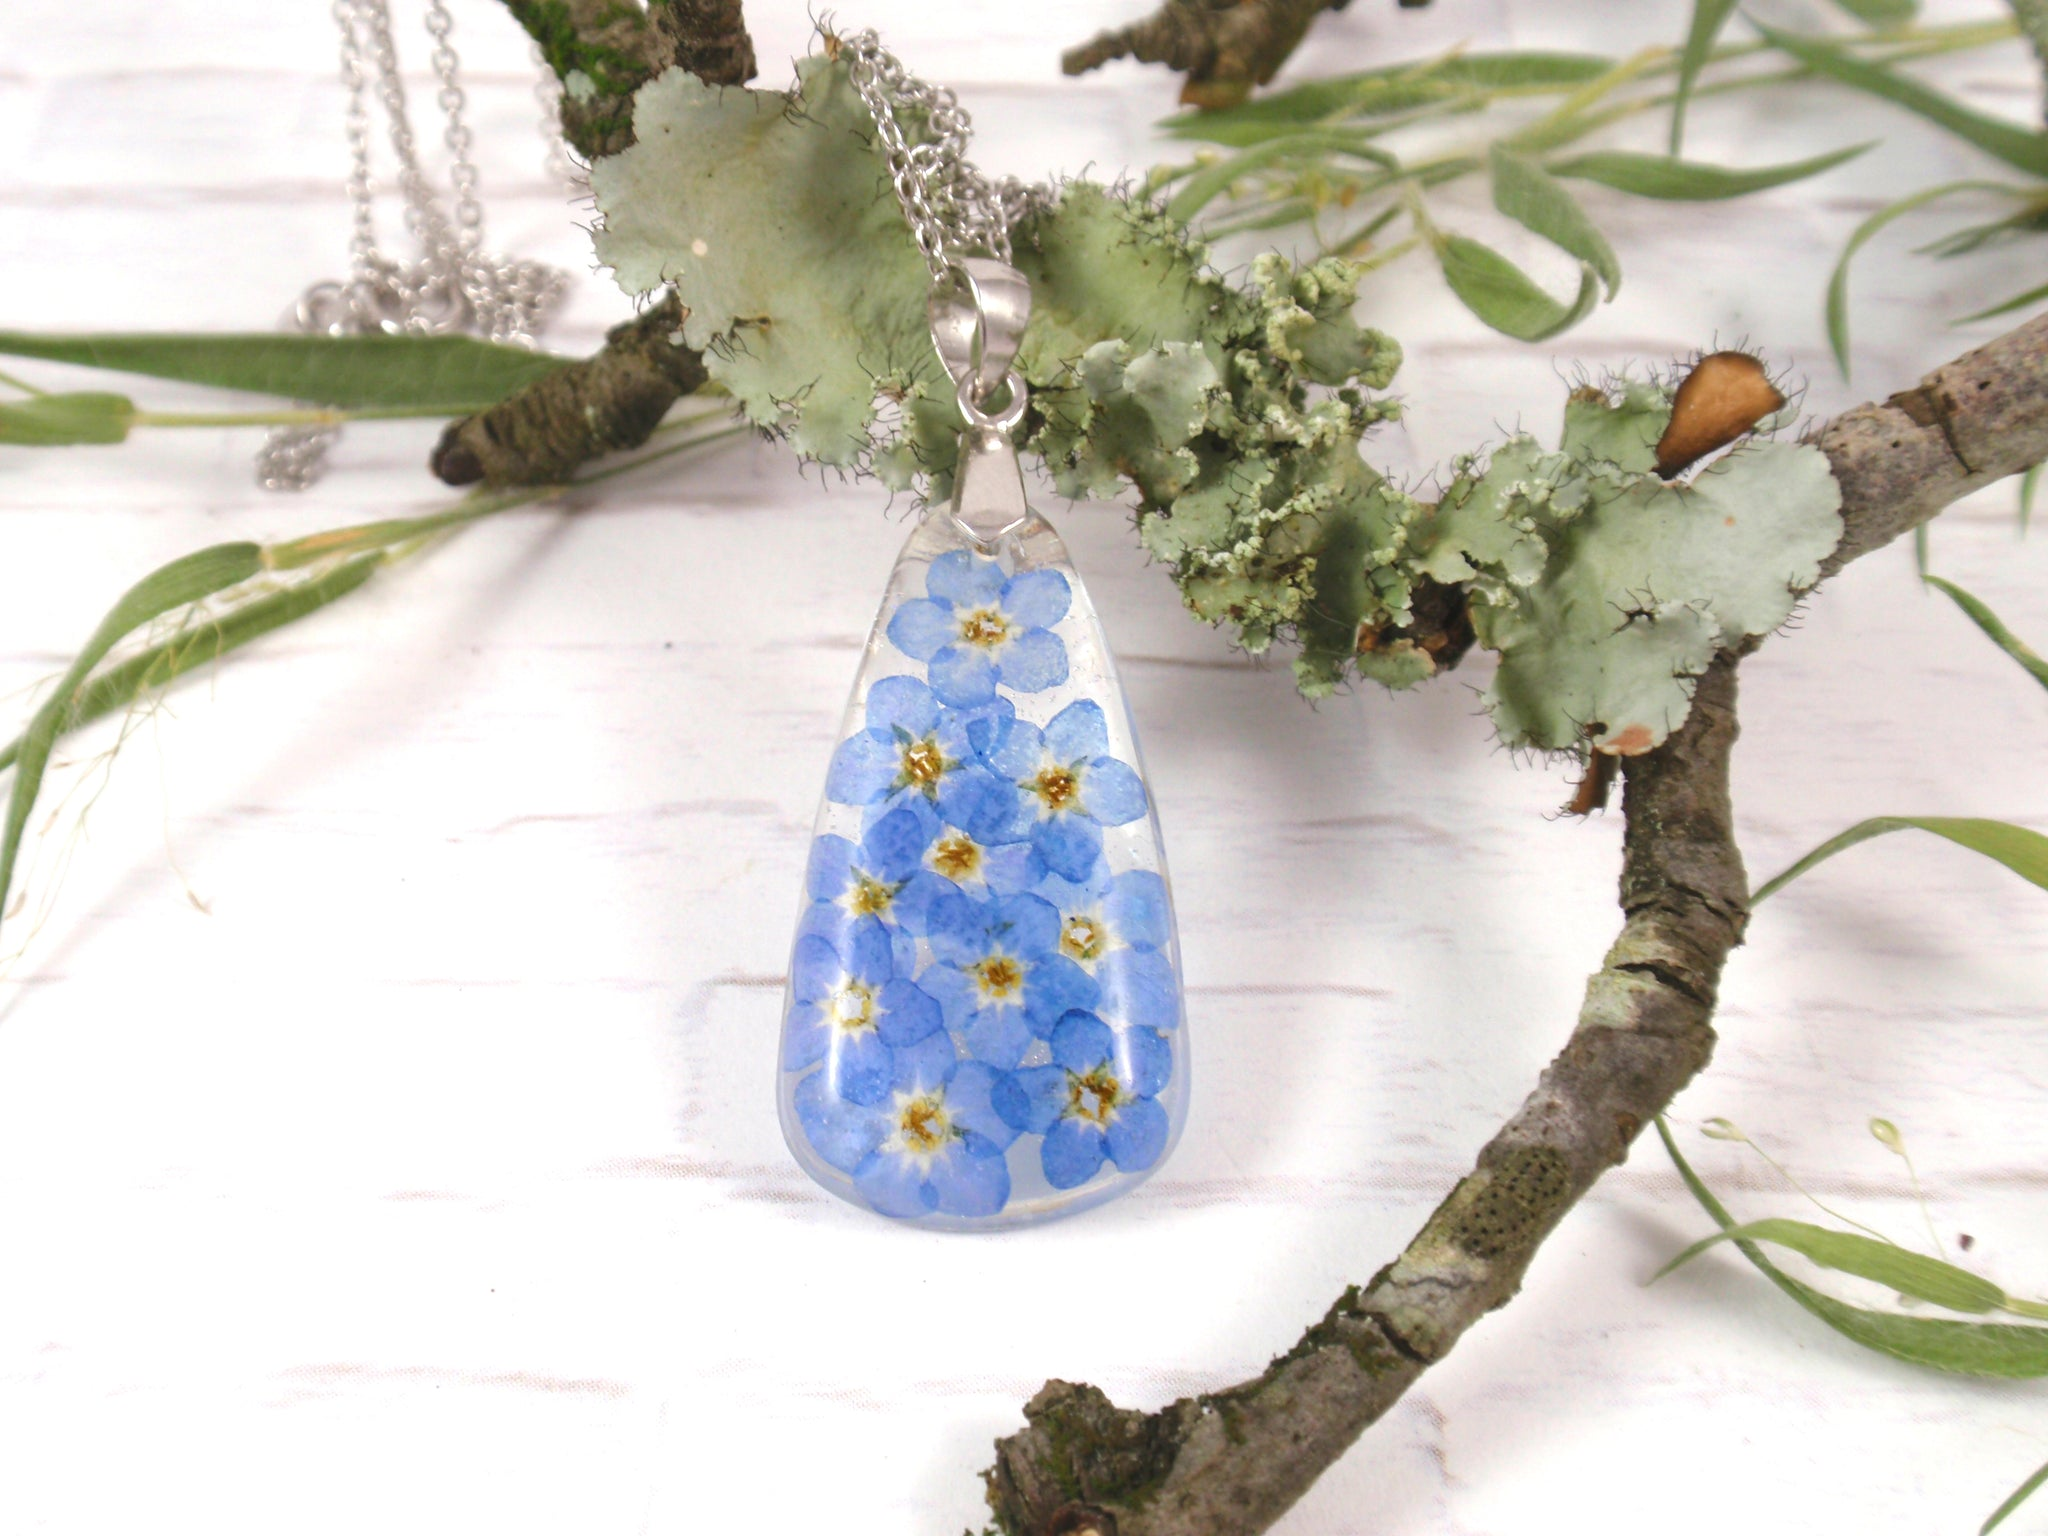 Botanical jewelry with Forget me not flowers, Handmade Real flower necklace